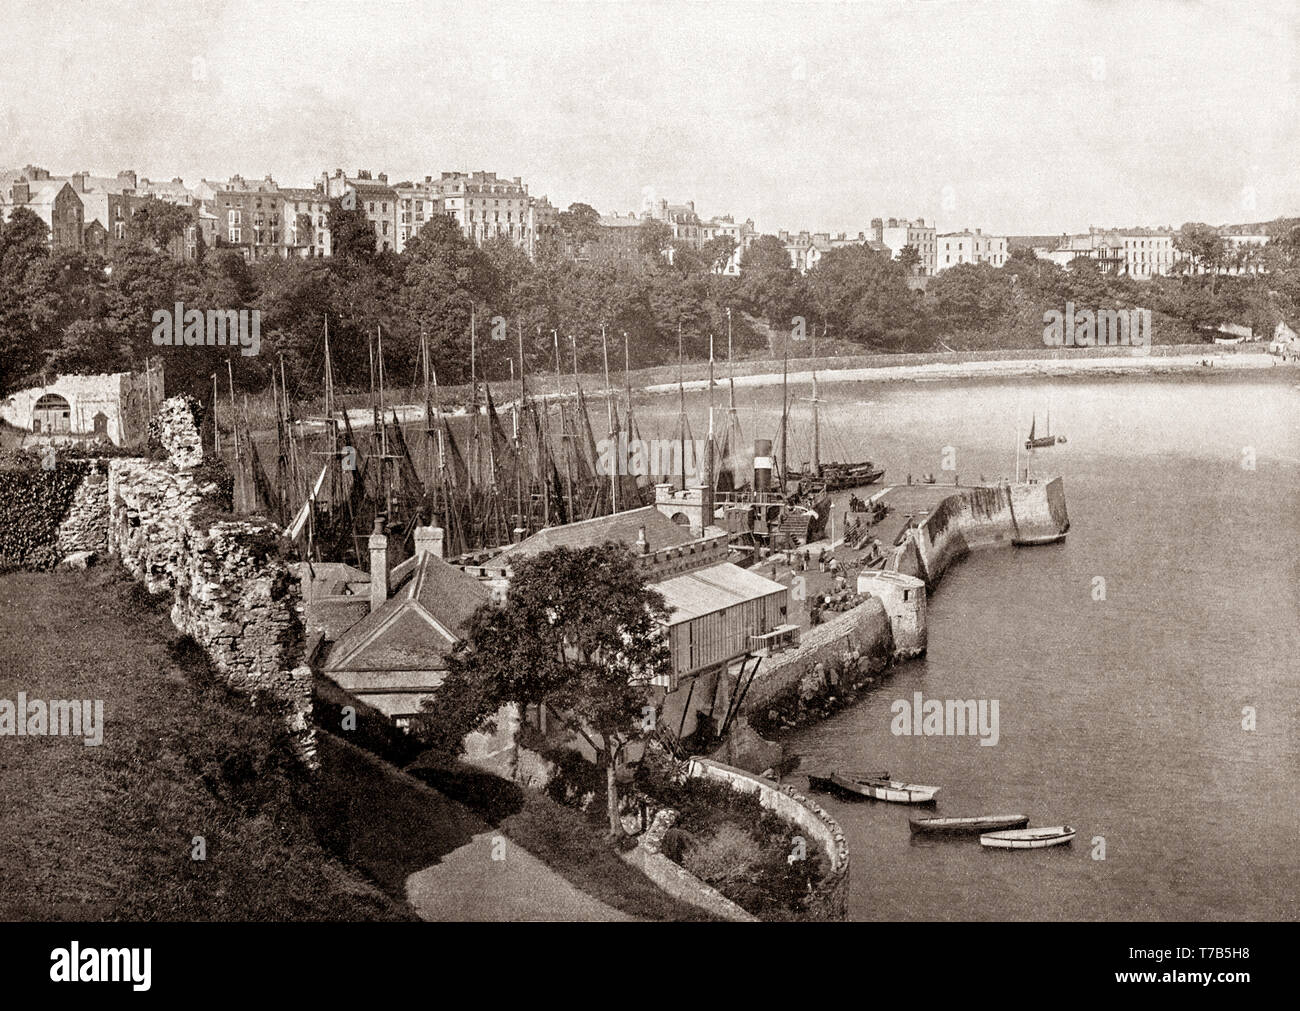 A late 19th Century view of Tenby, a walled seaside town in Pembrokeshire, Wales, on the western side of Carmarthen Bay. The town's fortunes rose when a local resident, merchant banker and politician, Sir William Paxton invested heavily in the area. With the growth in saltwater sea-bathing for health purposes, Paxton went on to create a 'fashionable bathing establishment suitable for the highest society. - Stock Image